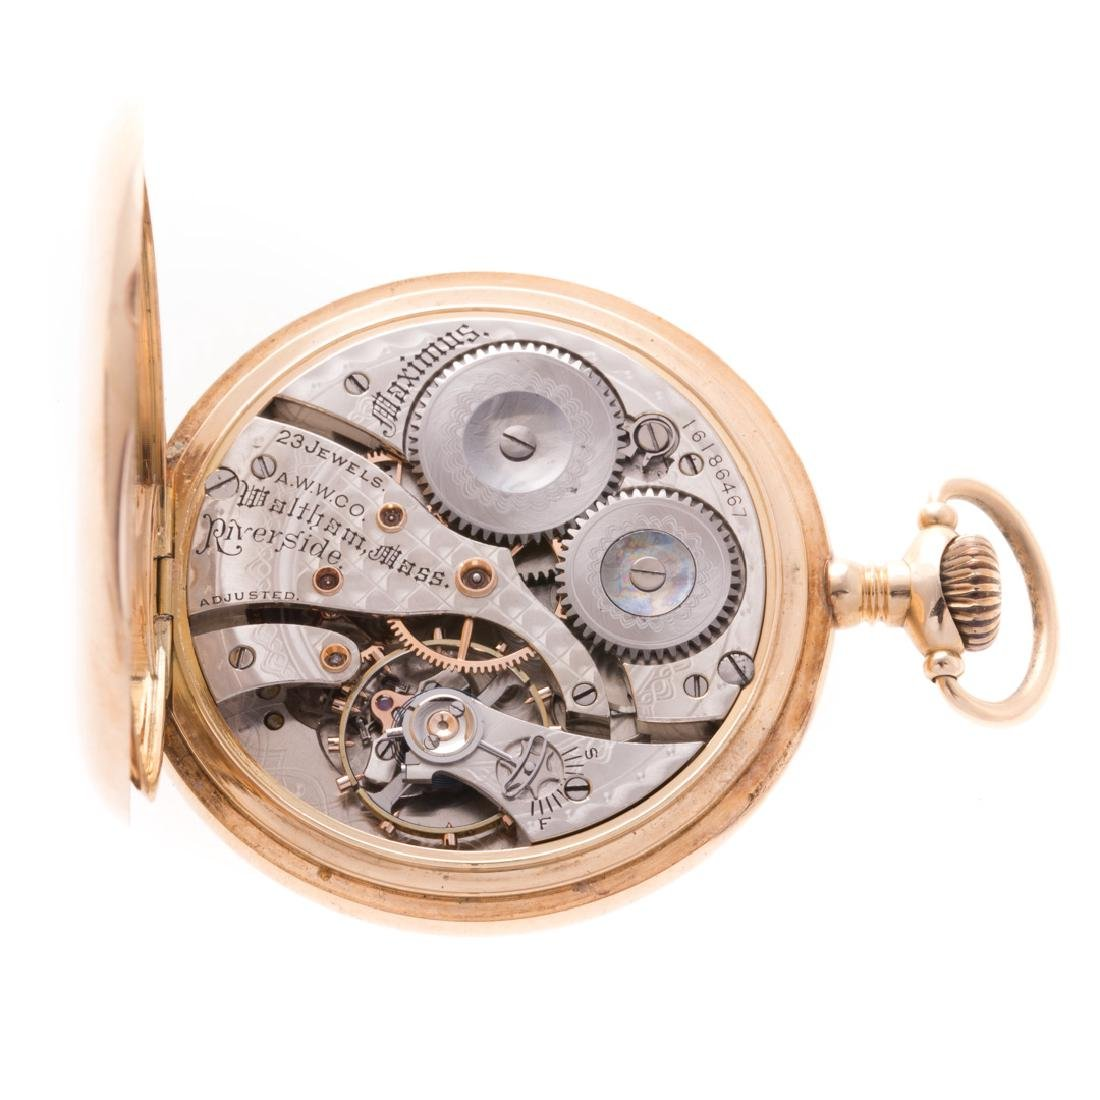 A Gentlemen's Waltham Pocket Watch in 14K - 4